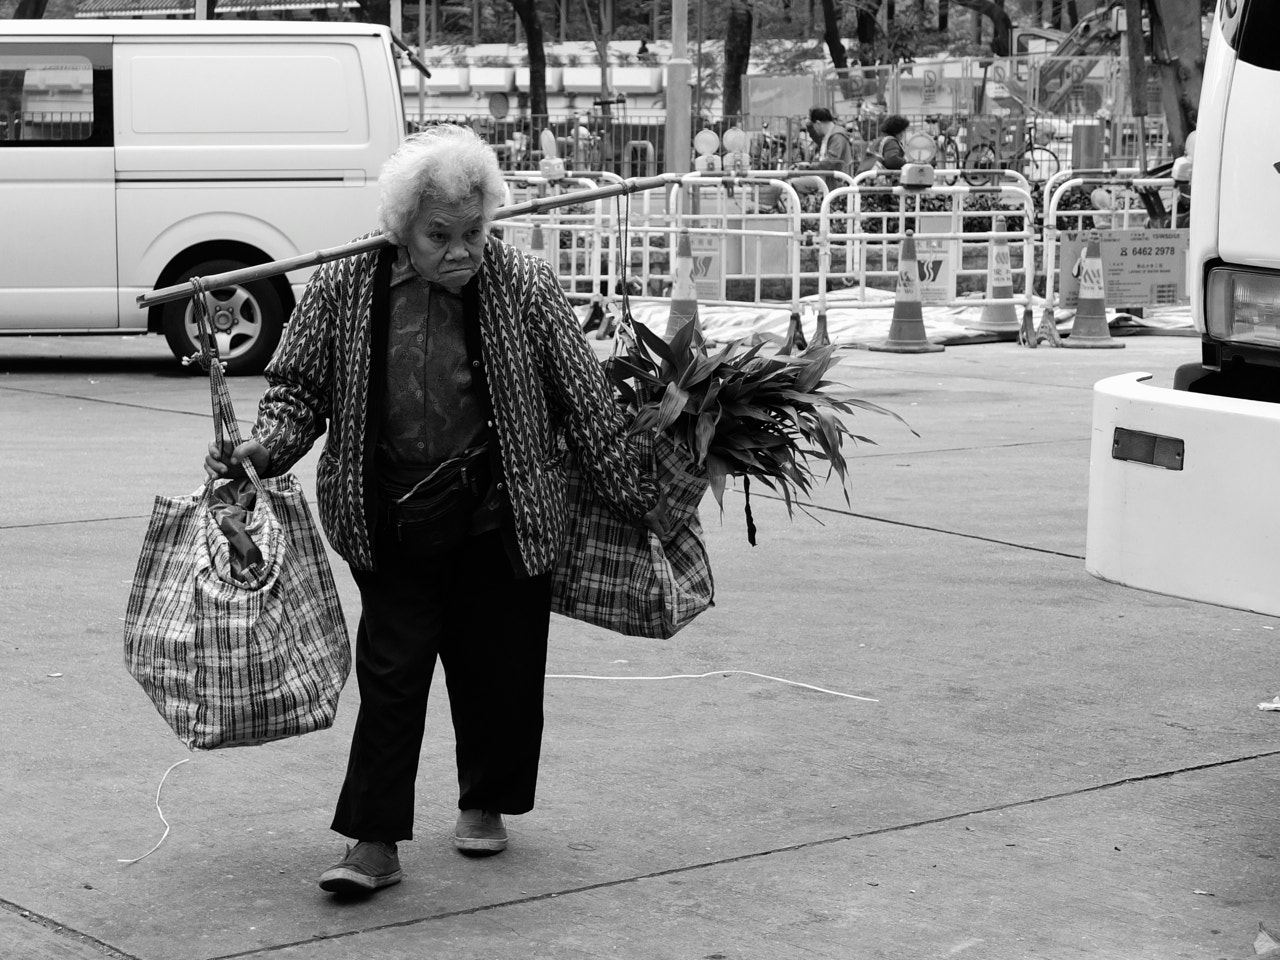 Photograph Going home from market by Timothy Huang on 500px